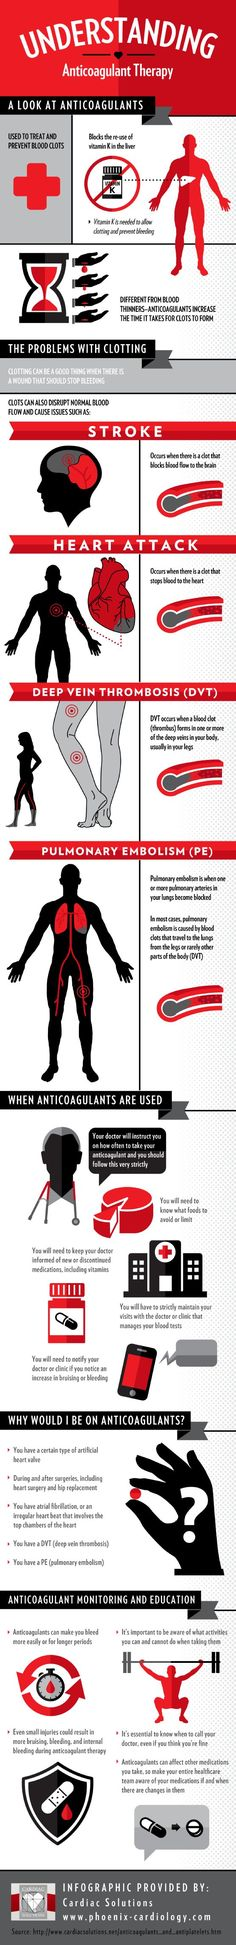 Blood clots can disrupt normal blood flow and cause issues such as stroke and he